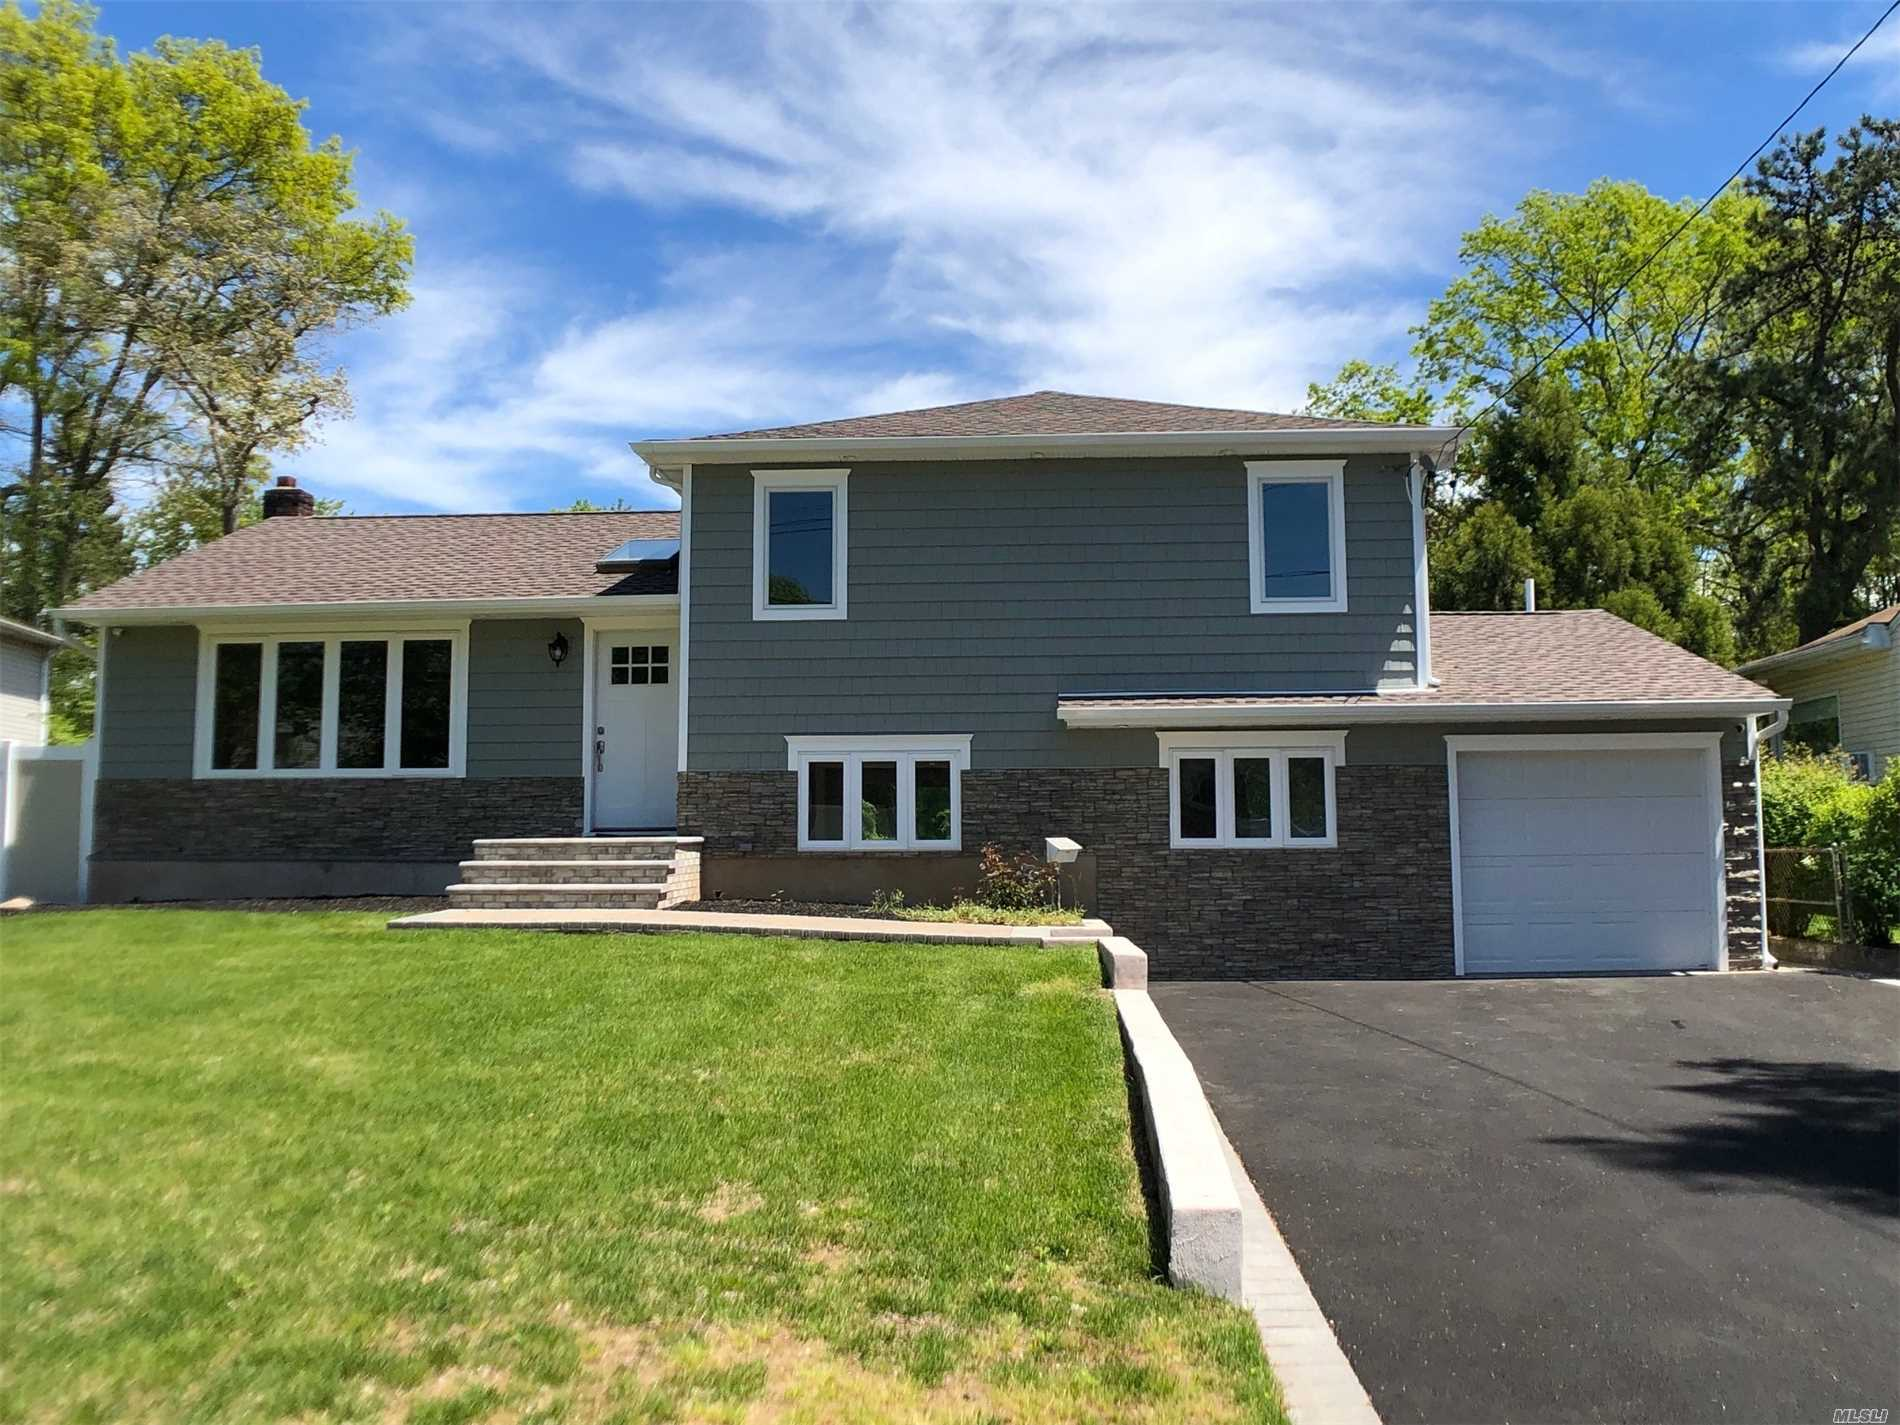 Total Renovation! All New In Viceroy Estates - Property Lovers Paradise!! All Energy Efficient Appliances - All New Kitchen Overlooks Beautiful Park-like Yard - Insulated Windows & Doors - Programmable Thermostat